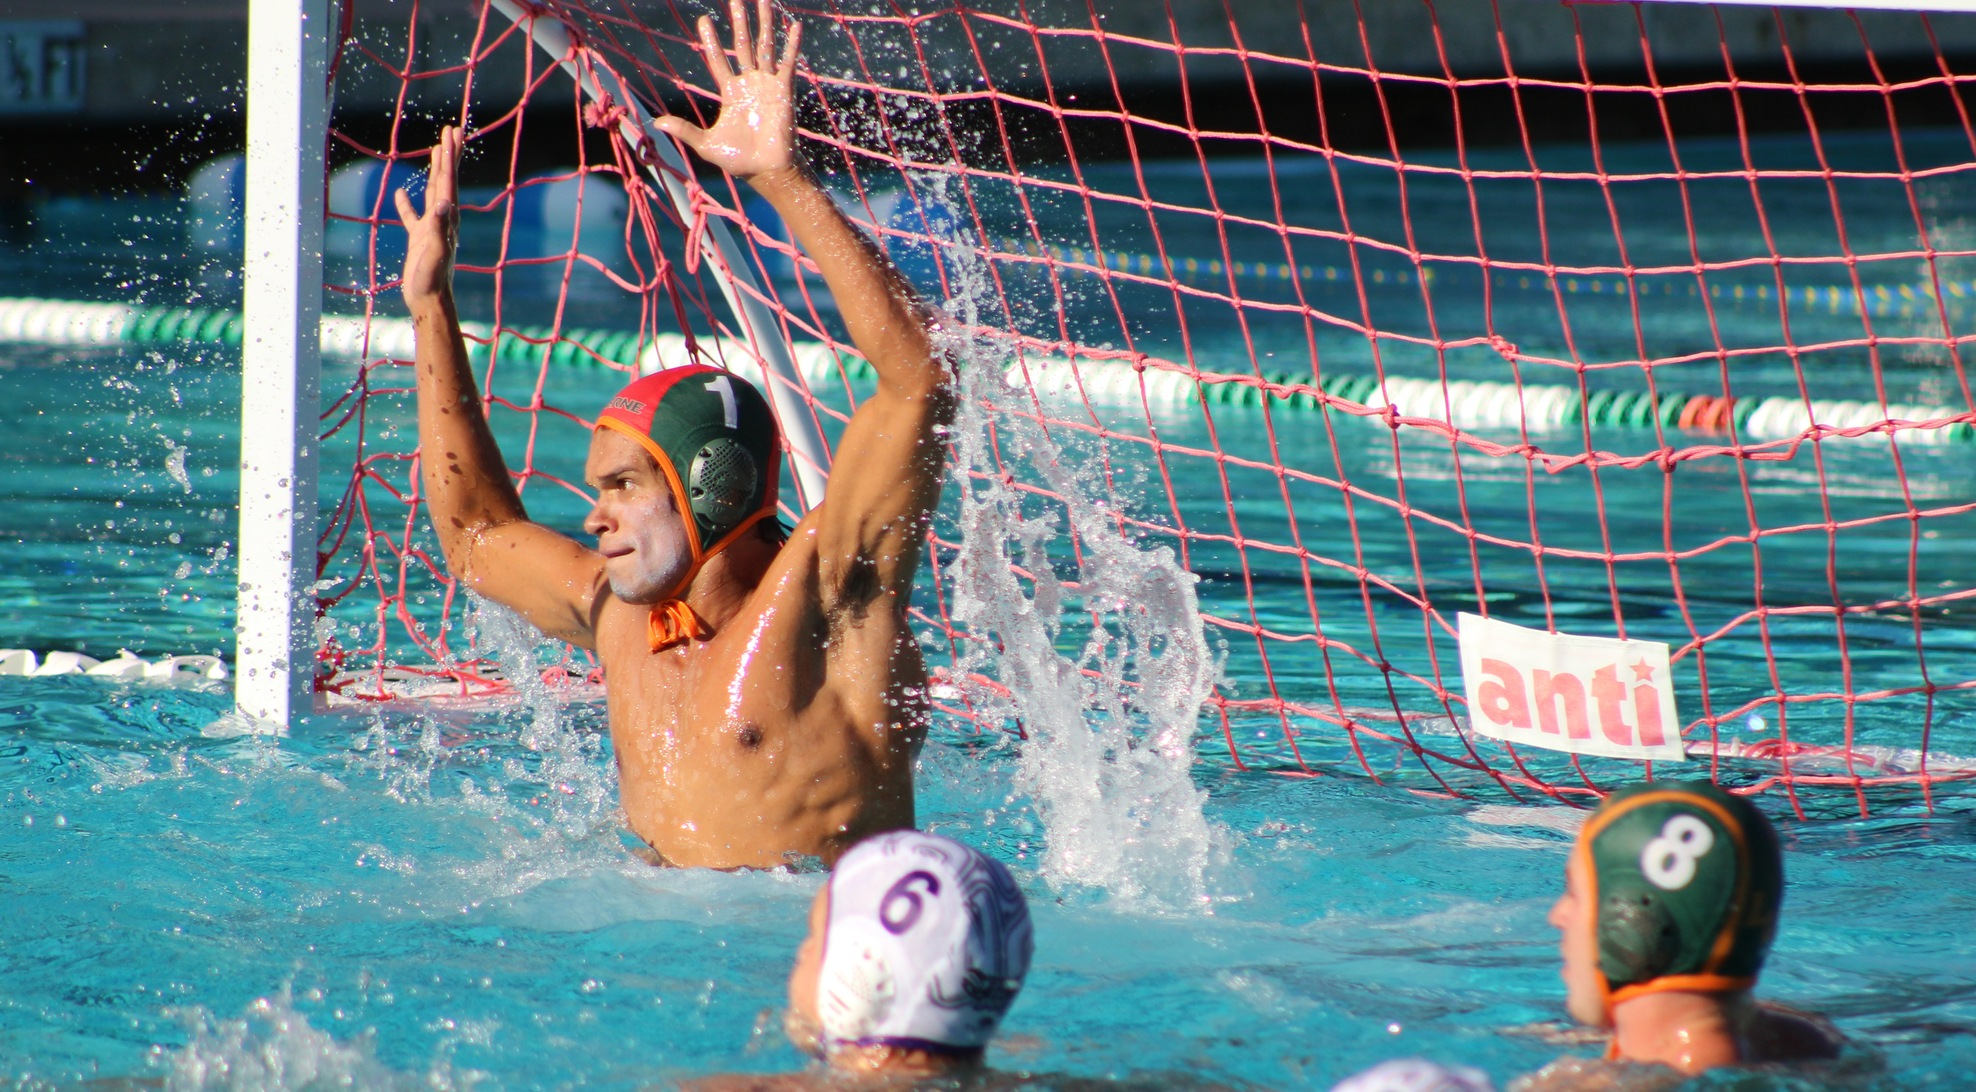 Men's Water Polo gives Whittier scare